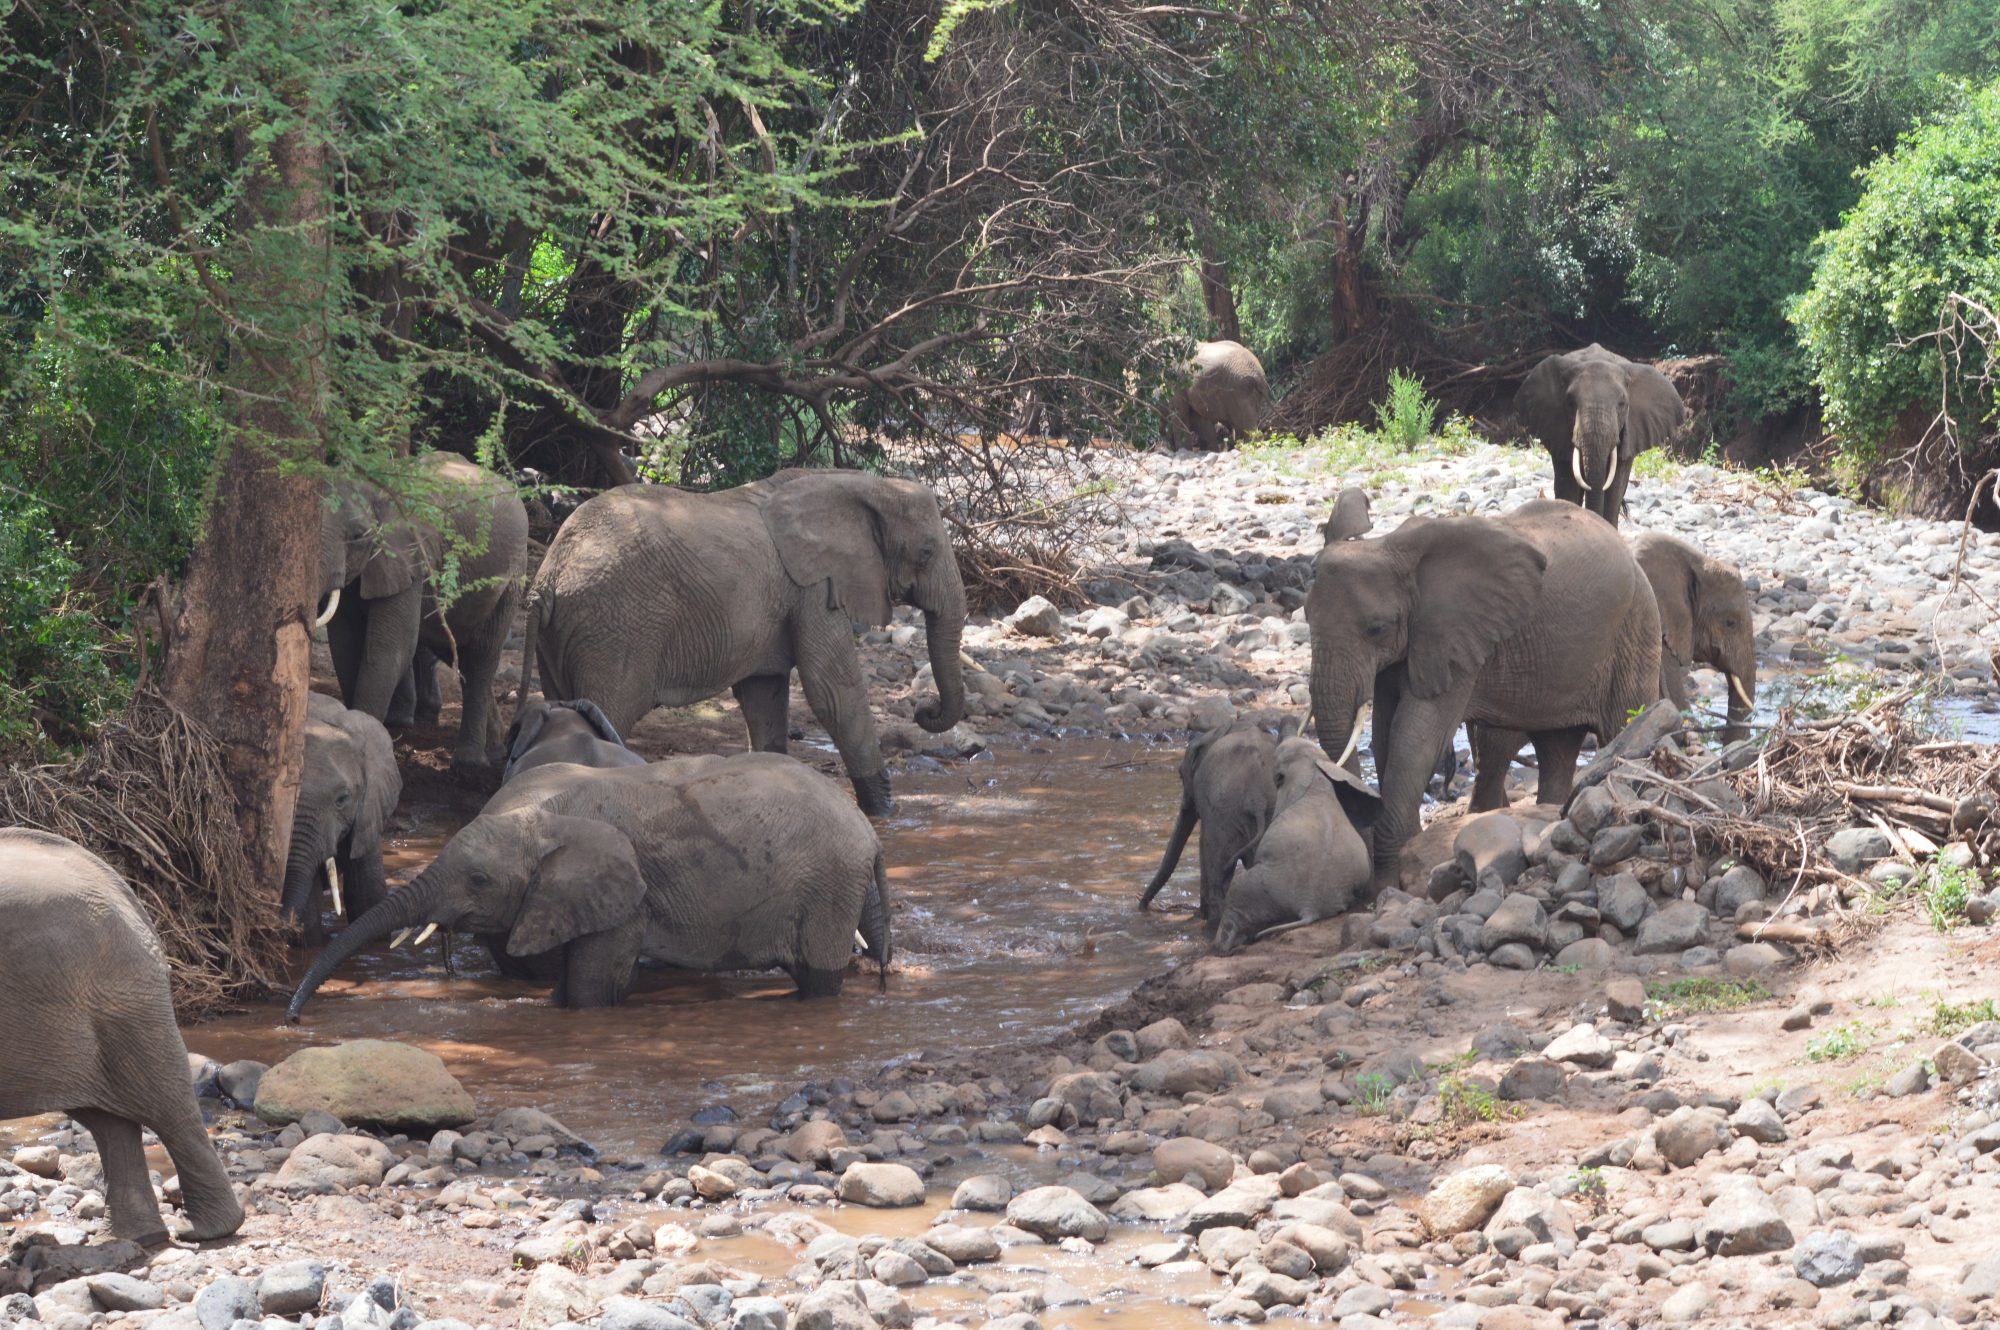 Elephants in the stream